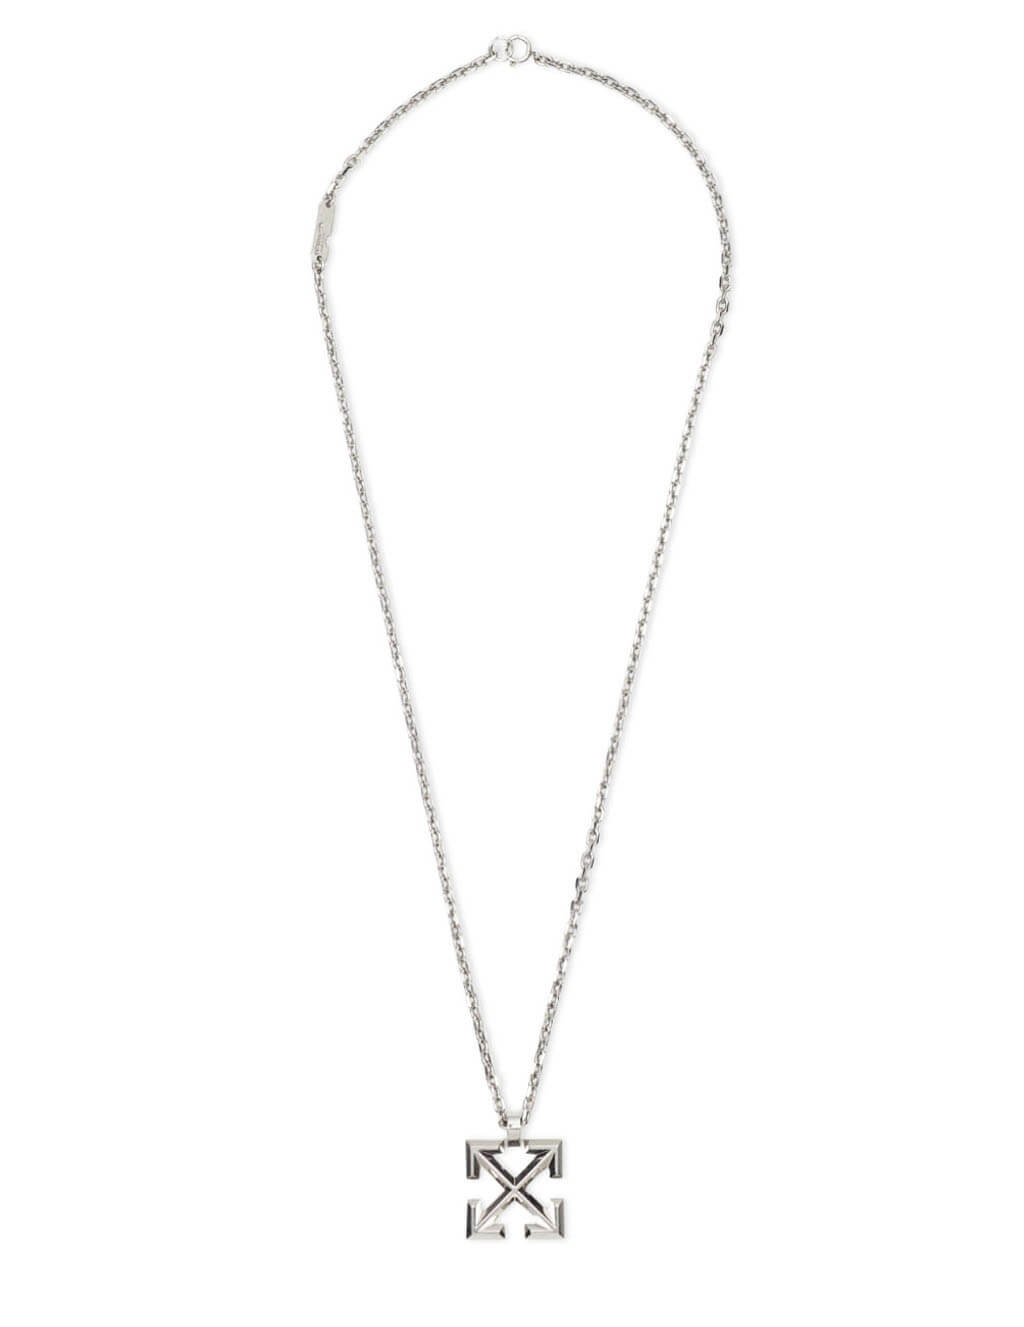 Men's Off-White Arrow Pendant Necklace in Silver - OMOB019R21MET0017200